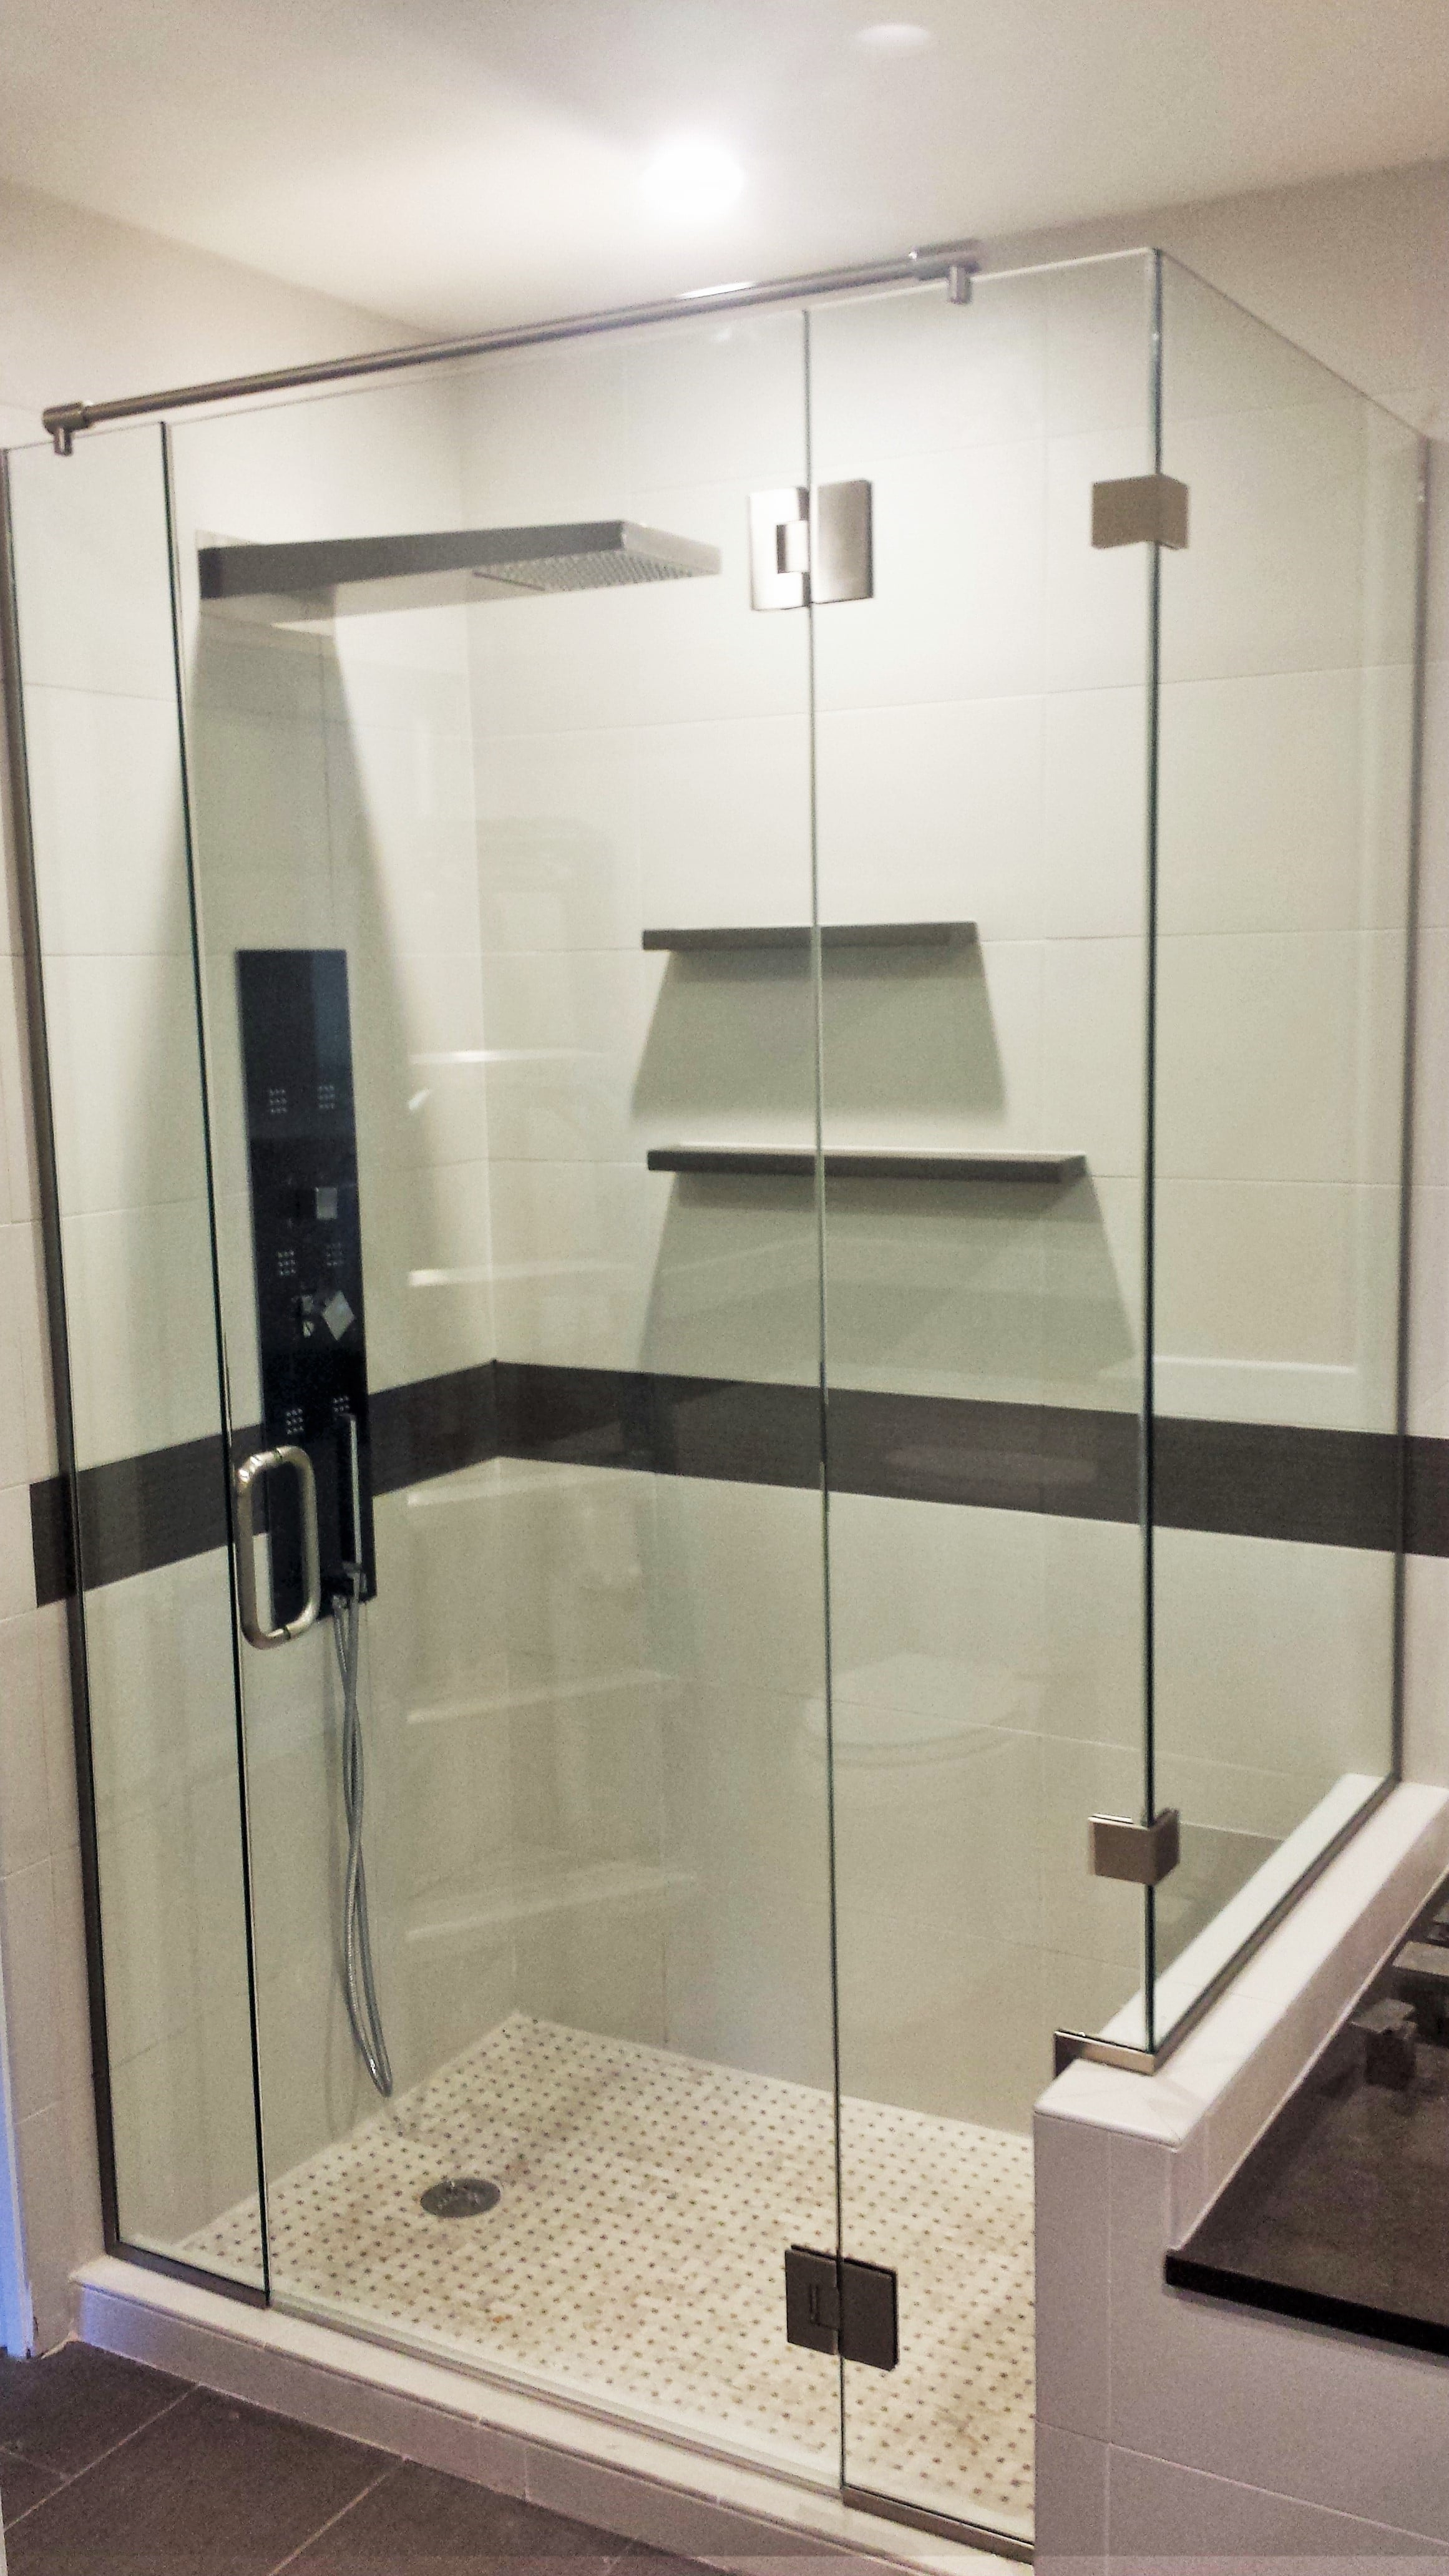 Residential glass services - shower enclosure